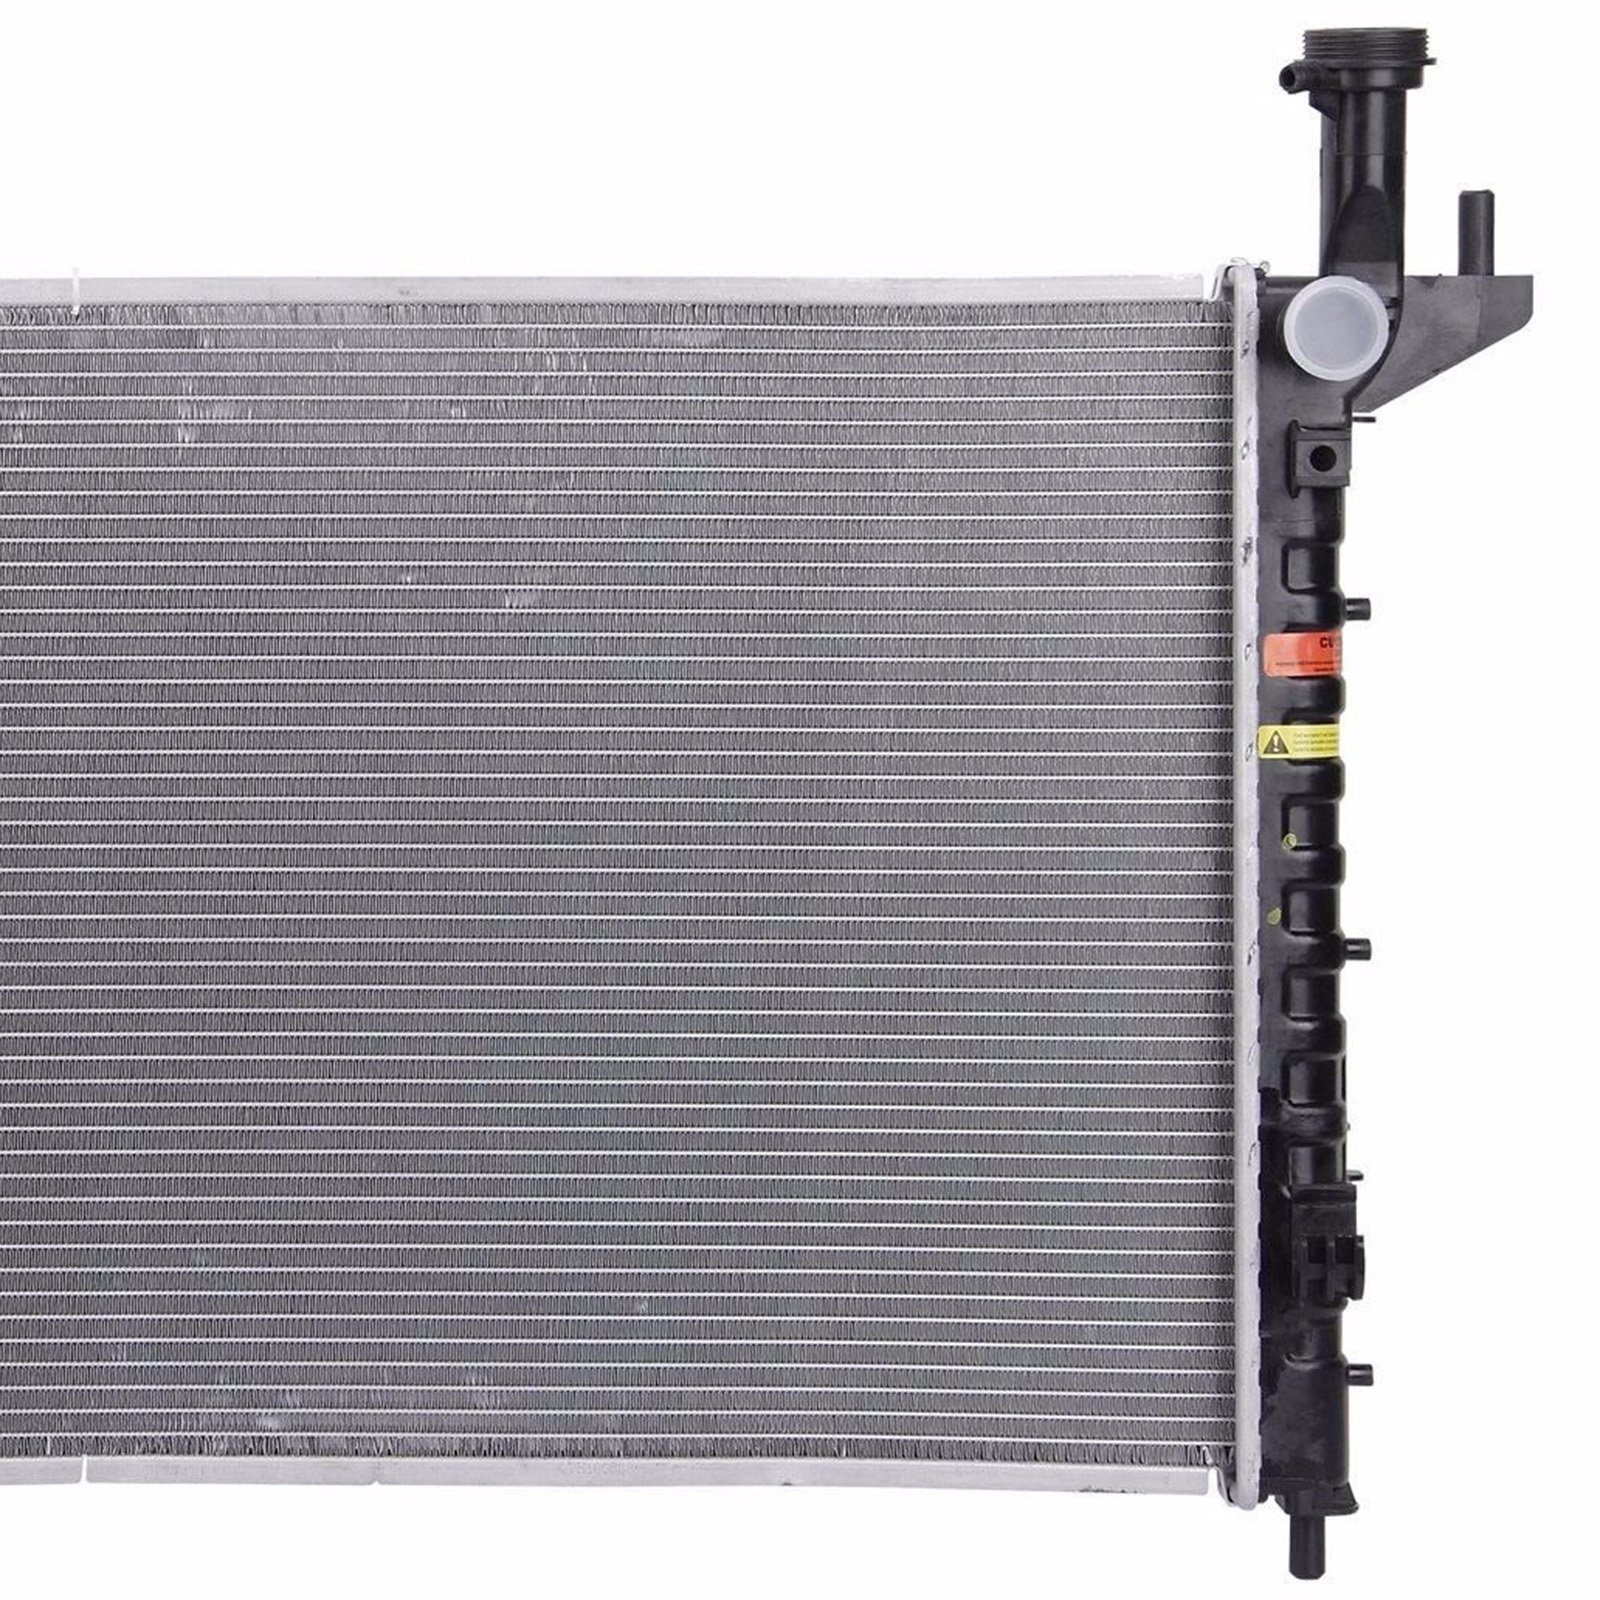 SCITOO 13007 Radiator fits for 2008-2015 Buick Enclave 2009-2015 Chevrolet Traverse 2007-2014 GMC Acadia Sport Utility 4-Door 3.6L by SCITOO (Image #2)